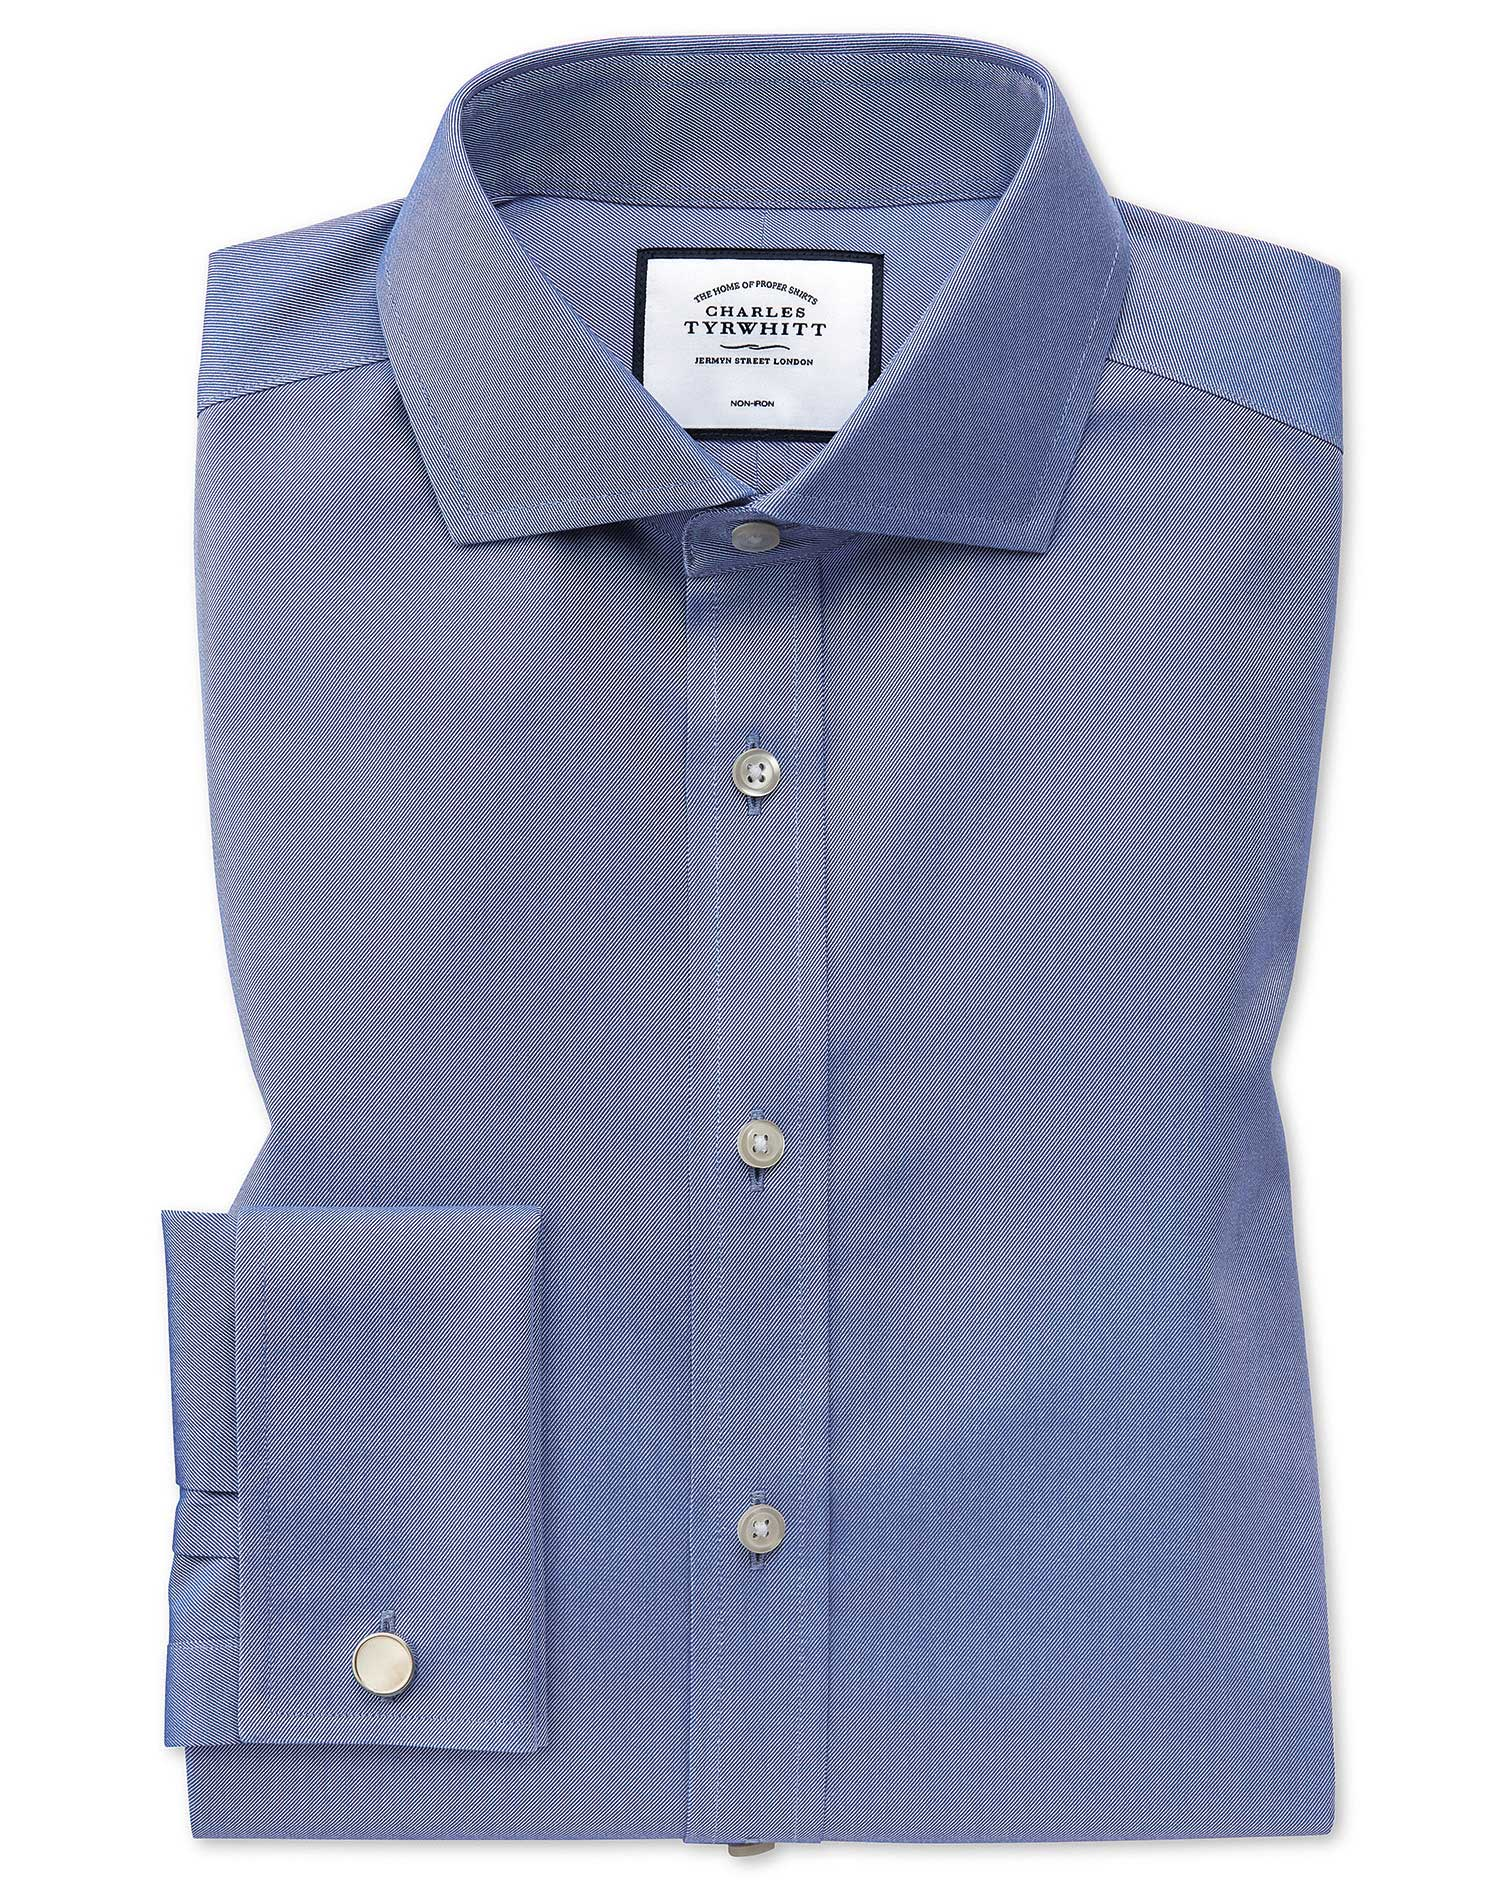 Extra Slim Fit Cutaway Non-Iron Twill Mid Blue Cotton Formal Shirt Single Cuff Size 15.5/32 by Charl